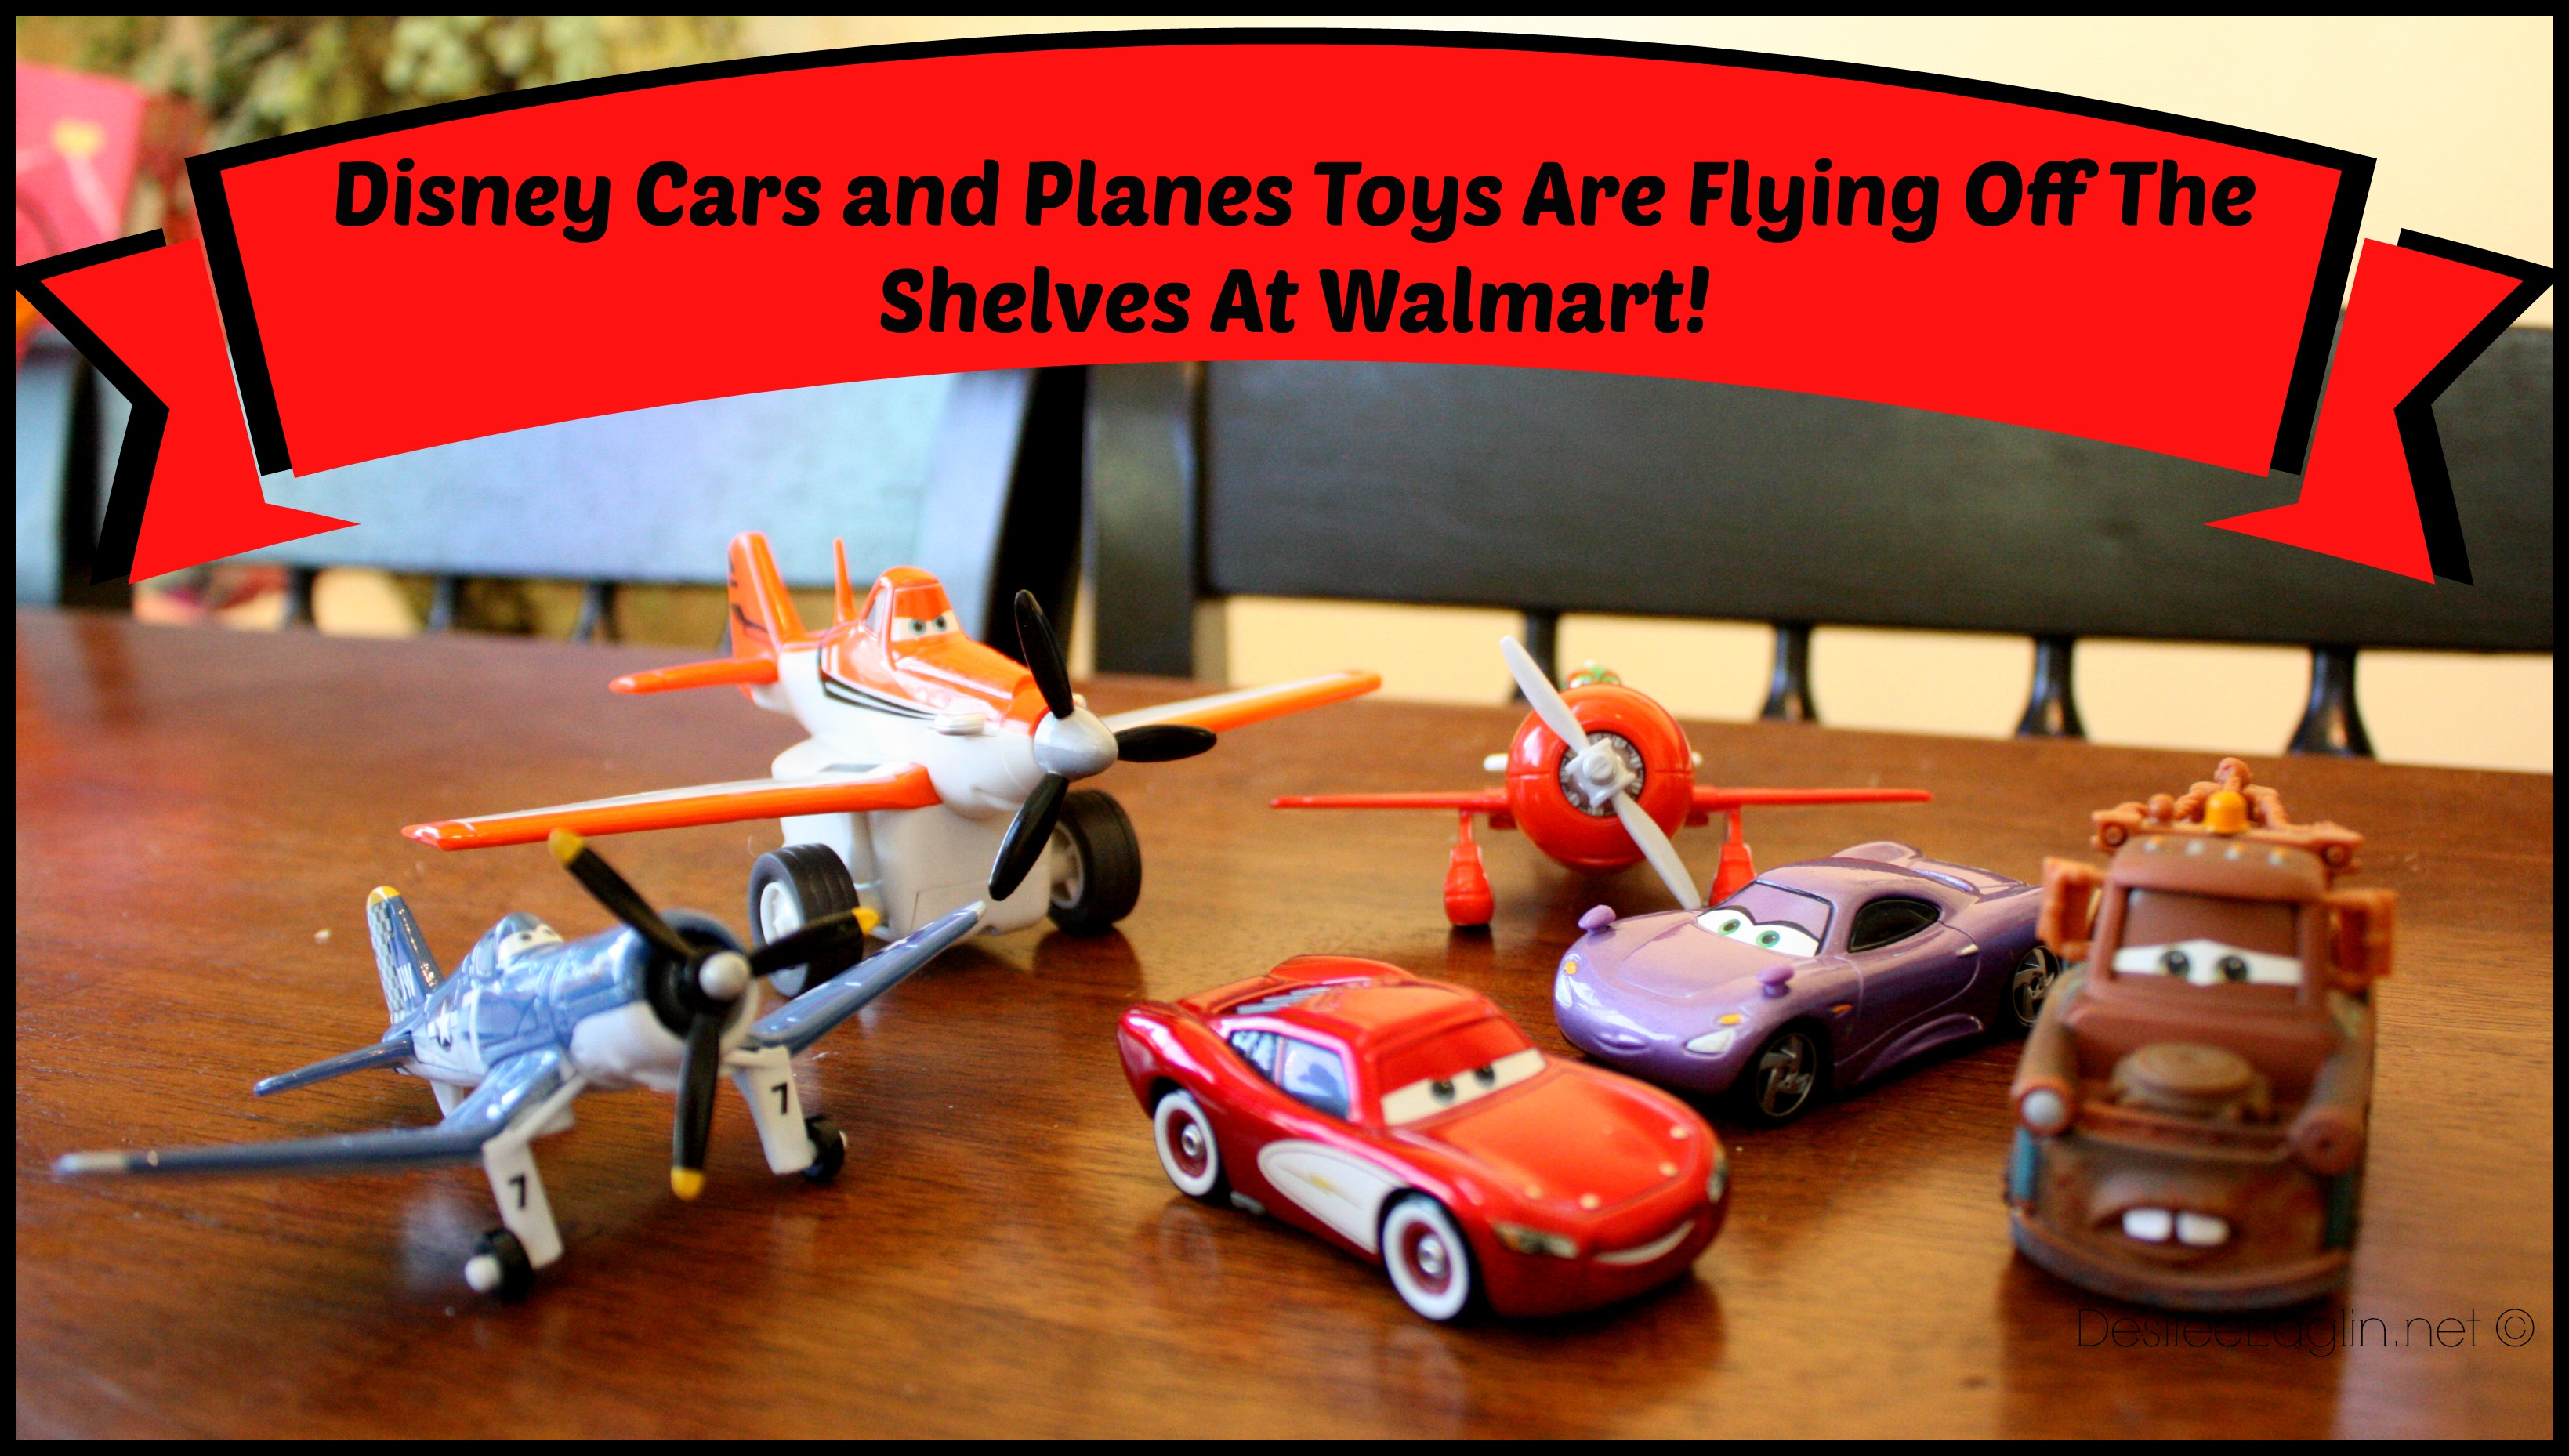 gas rc trucks at walmart with Toys Planes 2015 on 38087624 together with Best Place To Buy Rc Cars further Toys To Buy 2015 as well Kids Go Karts Pedal Powered Toys Toys R Us besides 514043744939838409.